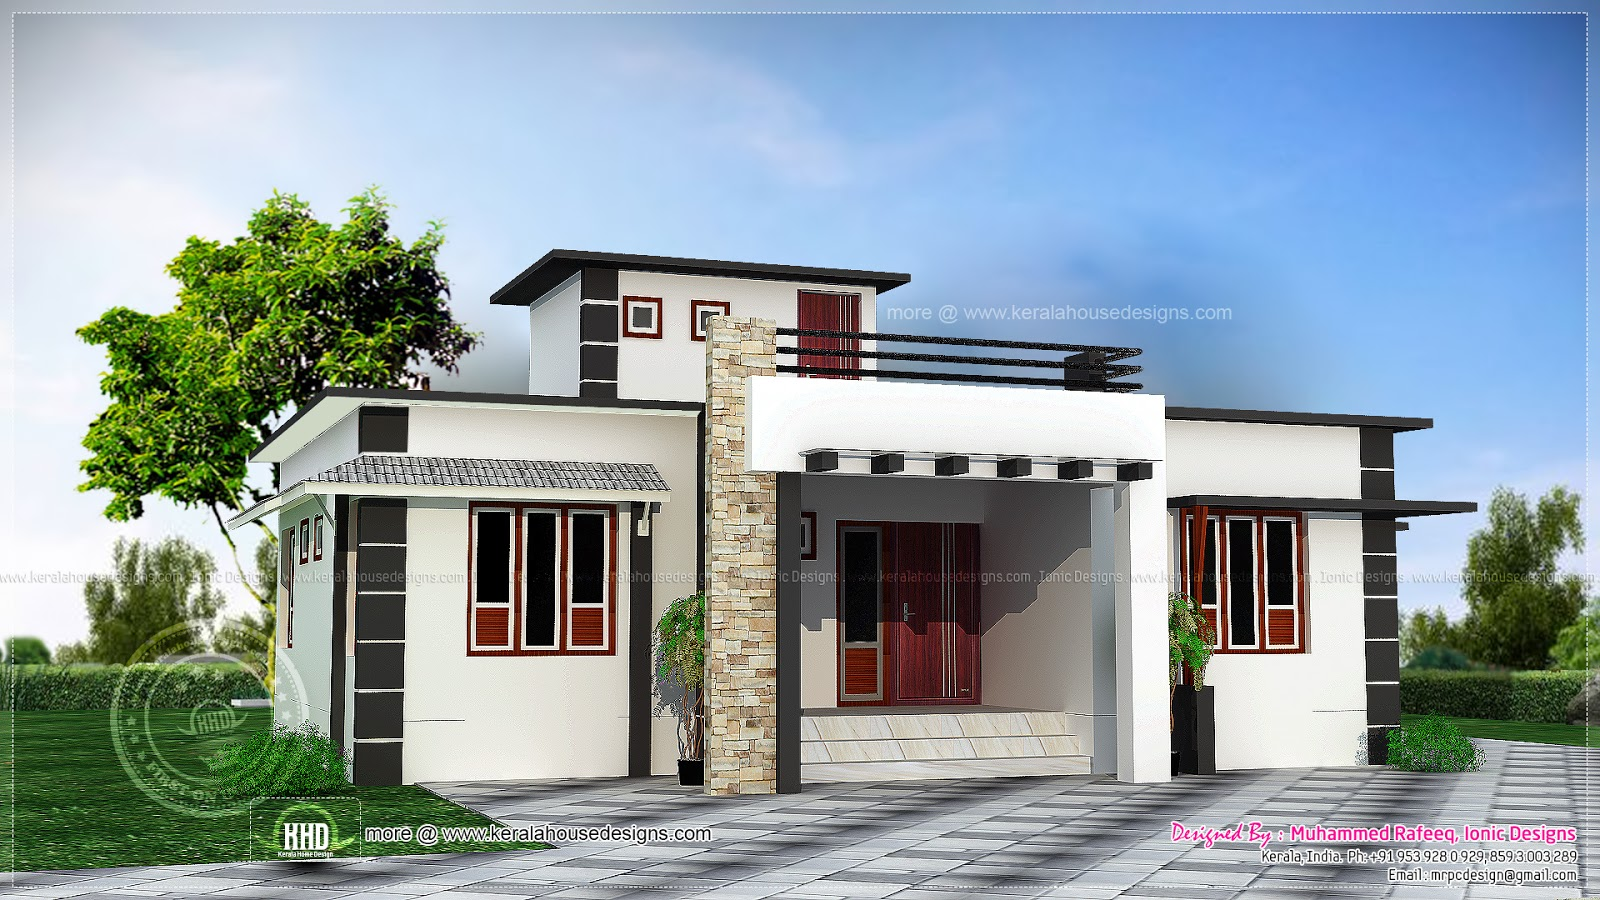 1060 square feet one storied house kerala home design and floor plans - Design of home ...